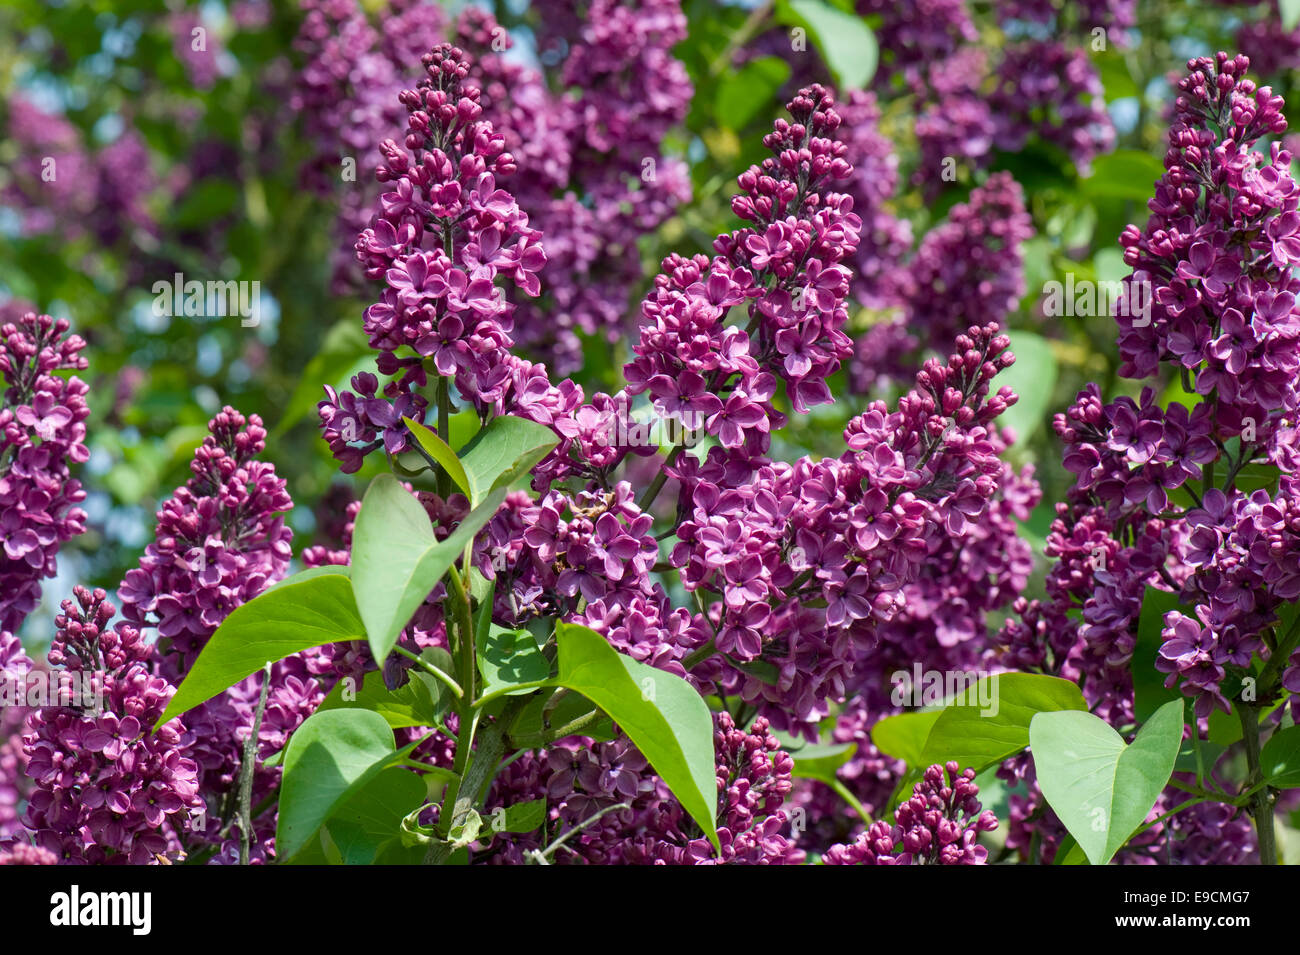 syringa vulgaris stockfotos syringa vulgaris bilder alamy. Black Bedroom Furniture Sets. Home Design Ideas